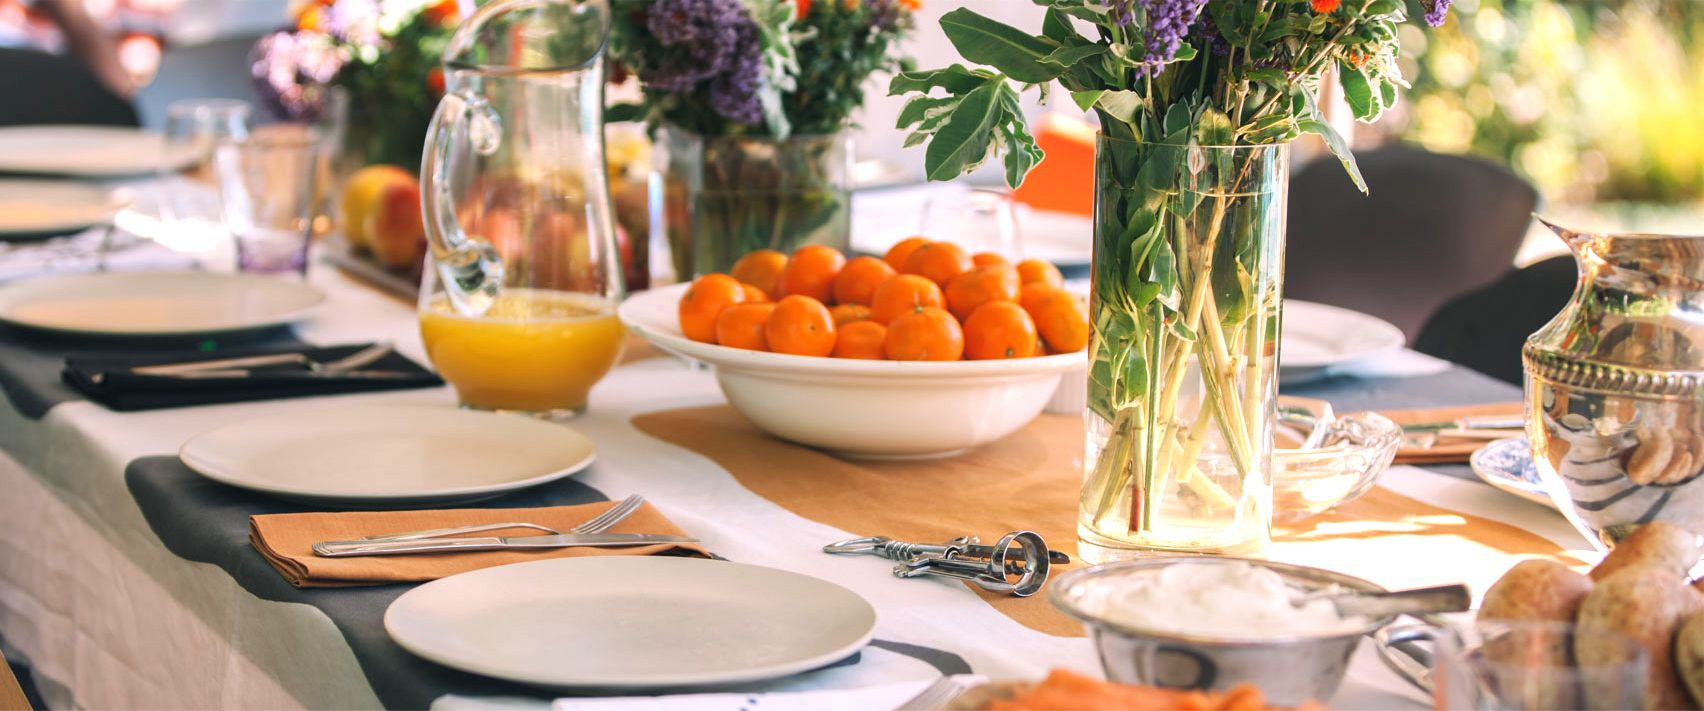 Fall brunch.  Orange, grey and purple.  Cromford tablecloth by Huddleson Linens